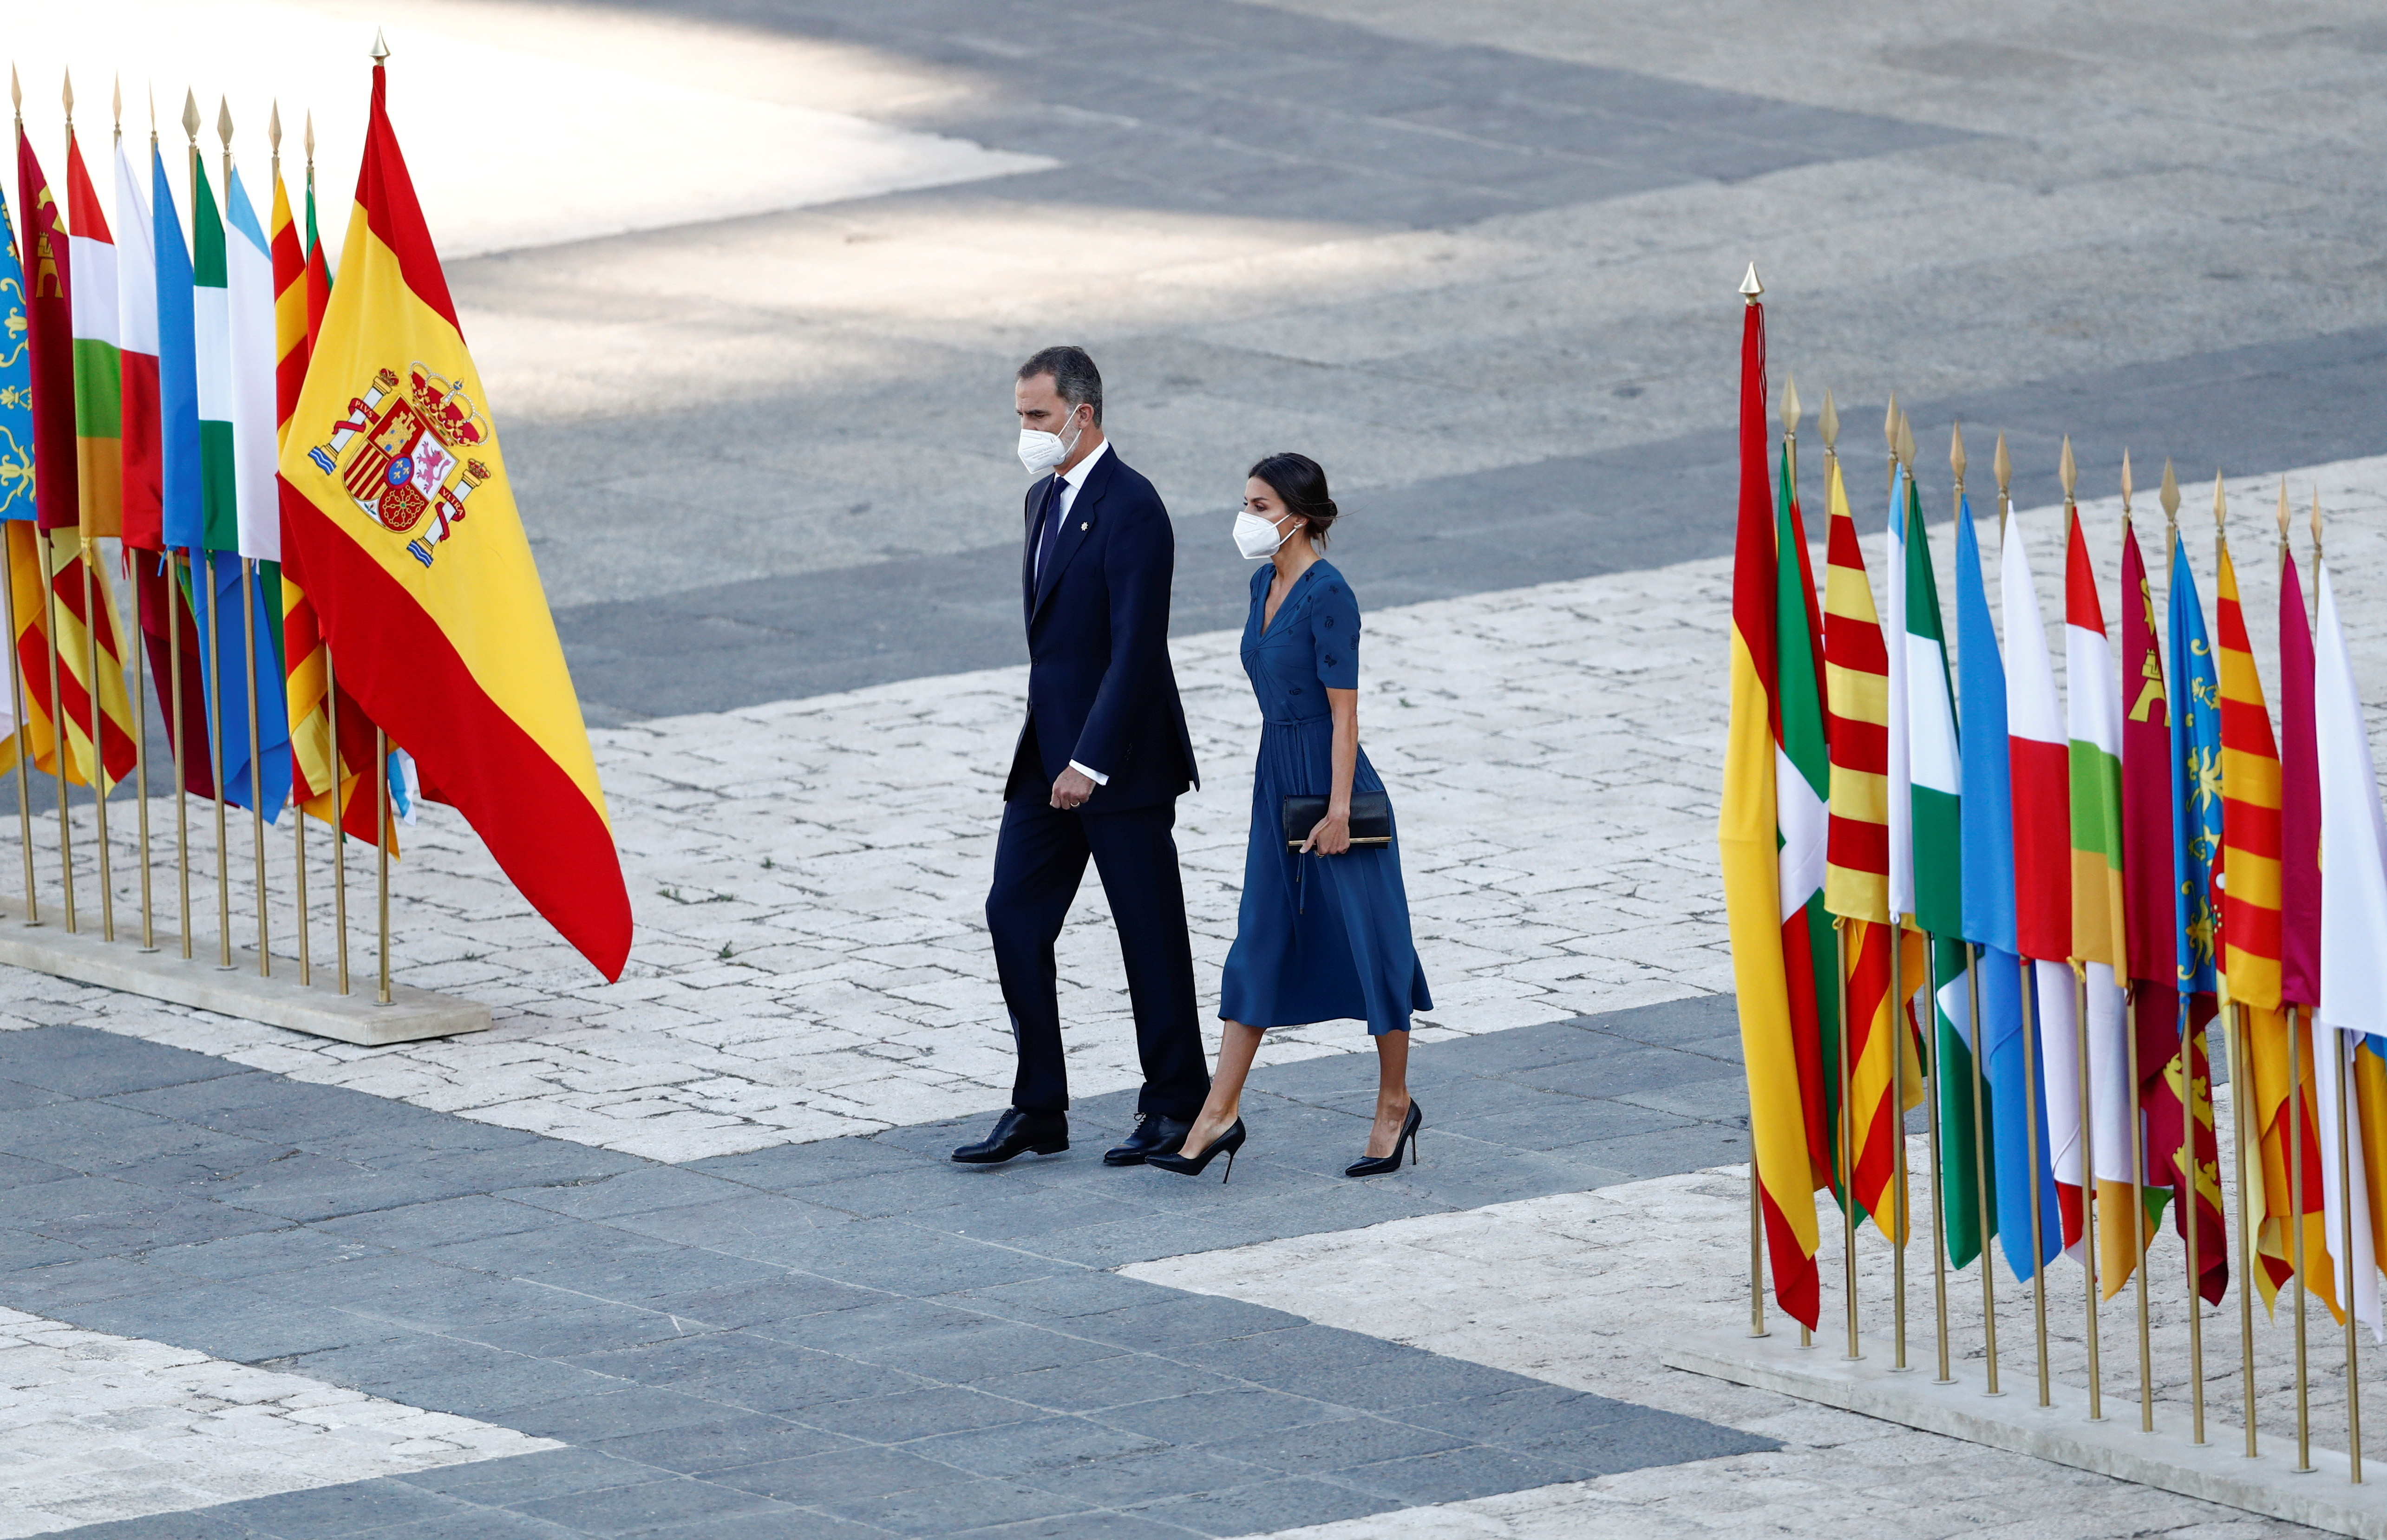 Spain's King Felipe and Queen Letizia attend a state tribute in memory of Spain's coronavirus disease (COVID-19) victims, at the Royal Palace in Madrid, Spain, July 15, 2021. REUTERS/Javier Barbancho - RC2VKO9RIFLI